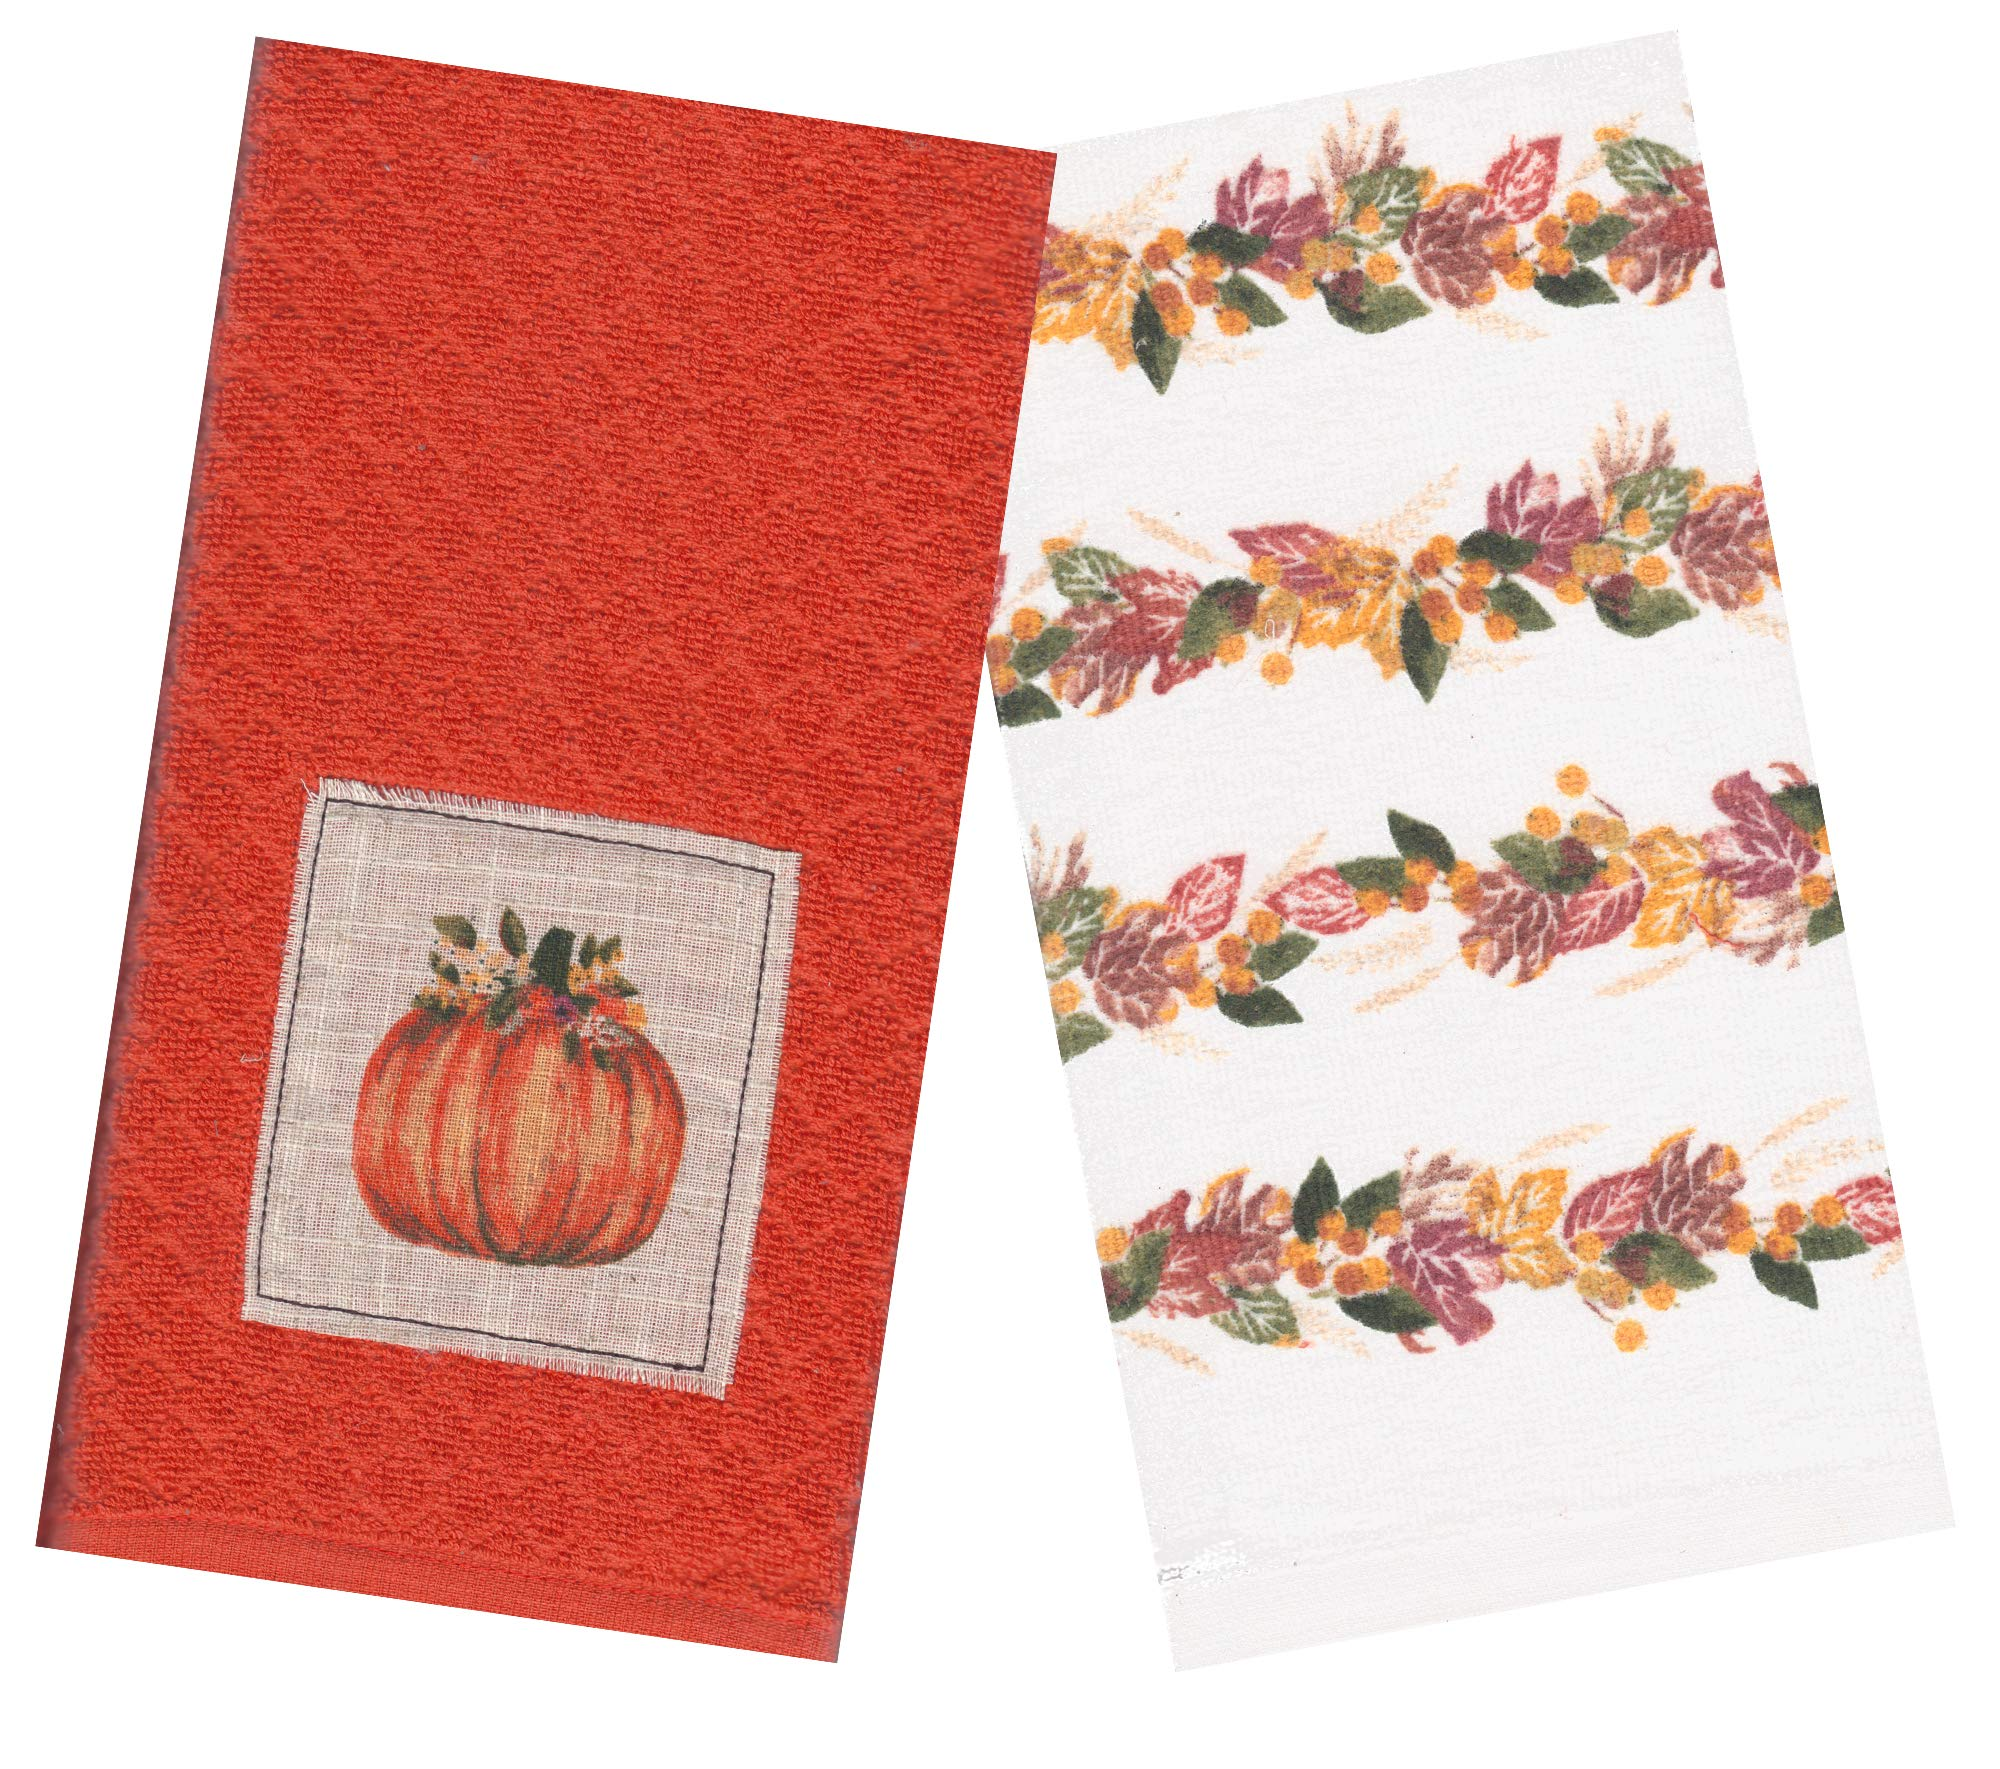 Celebrate Fall Kitchen Towel Set Orange Pumpkin And Autumn Leaves Designs 16 5 X 26 Inches Cotton Fabric Dish Towels For Harvest And Thanksgiving Buy Online In India At Desertcart In Productid 164778745